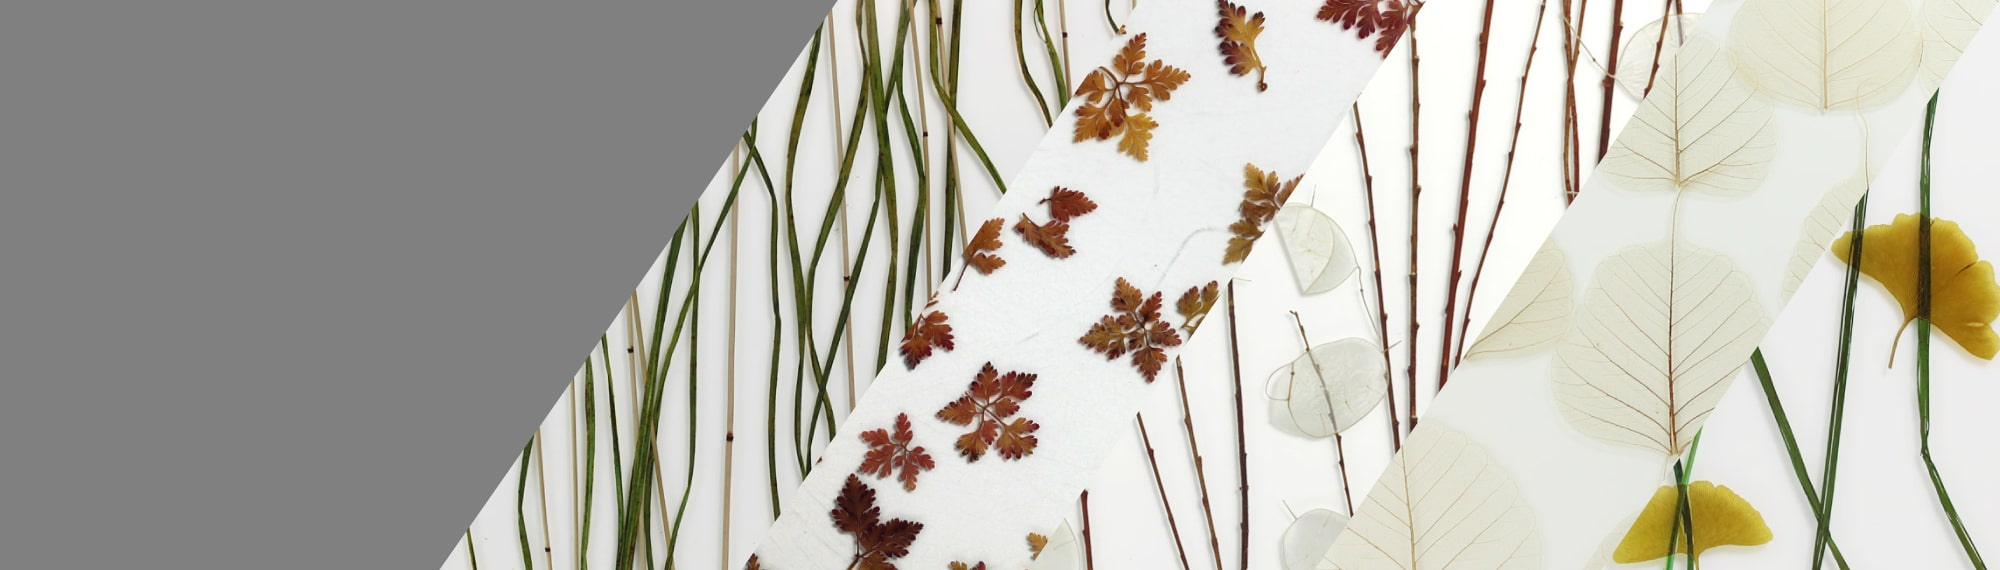 grass in glass surface products leaves in glass homepage slider organics min